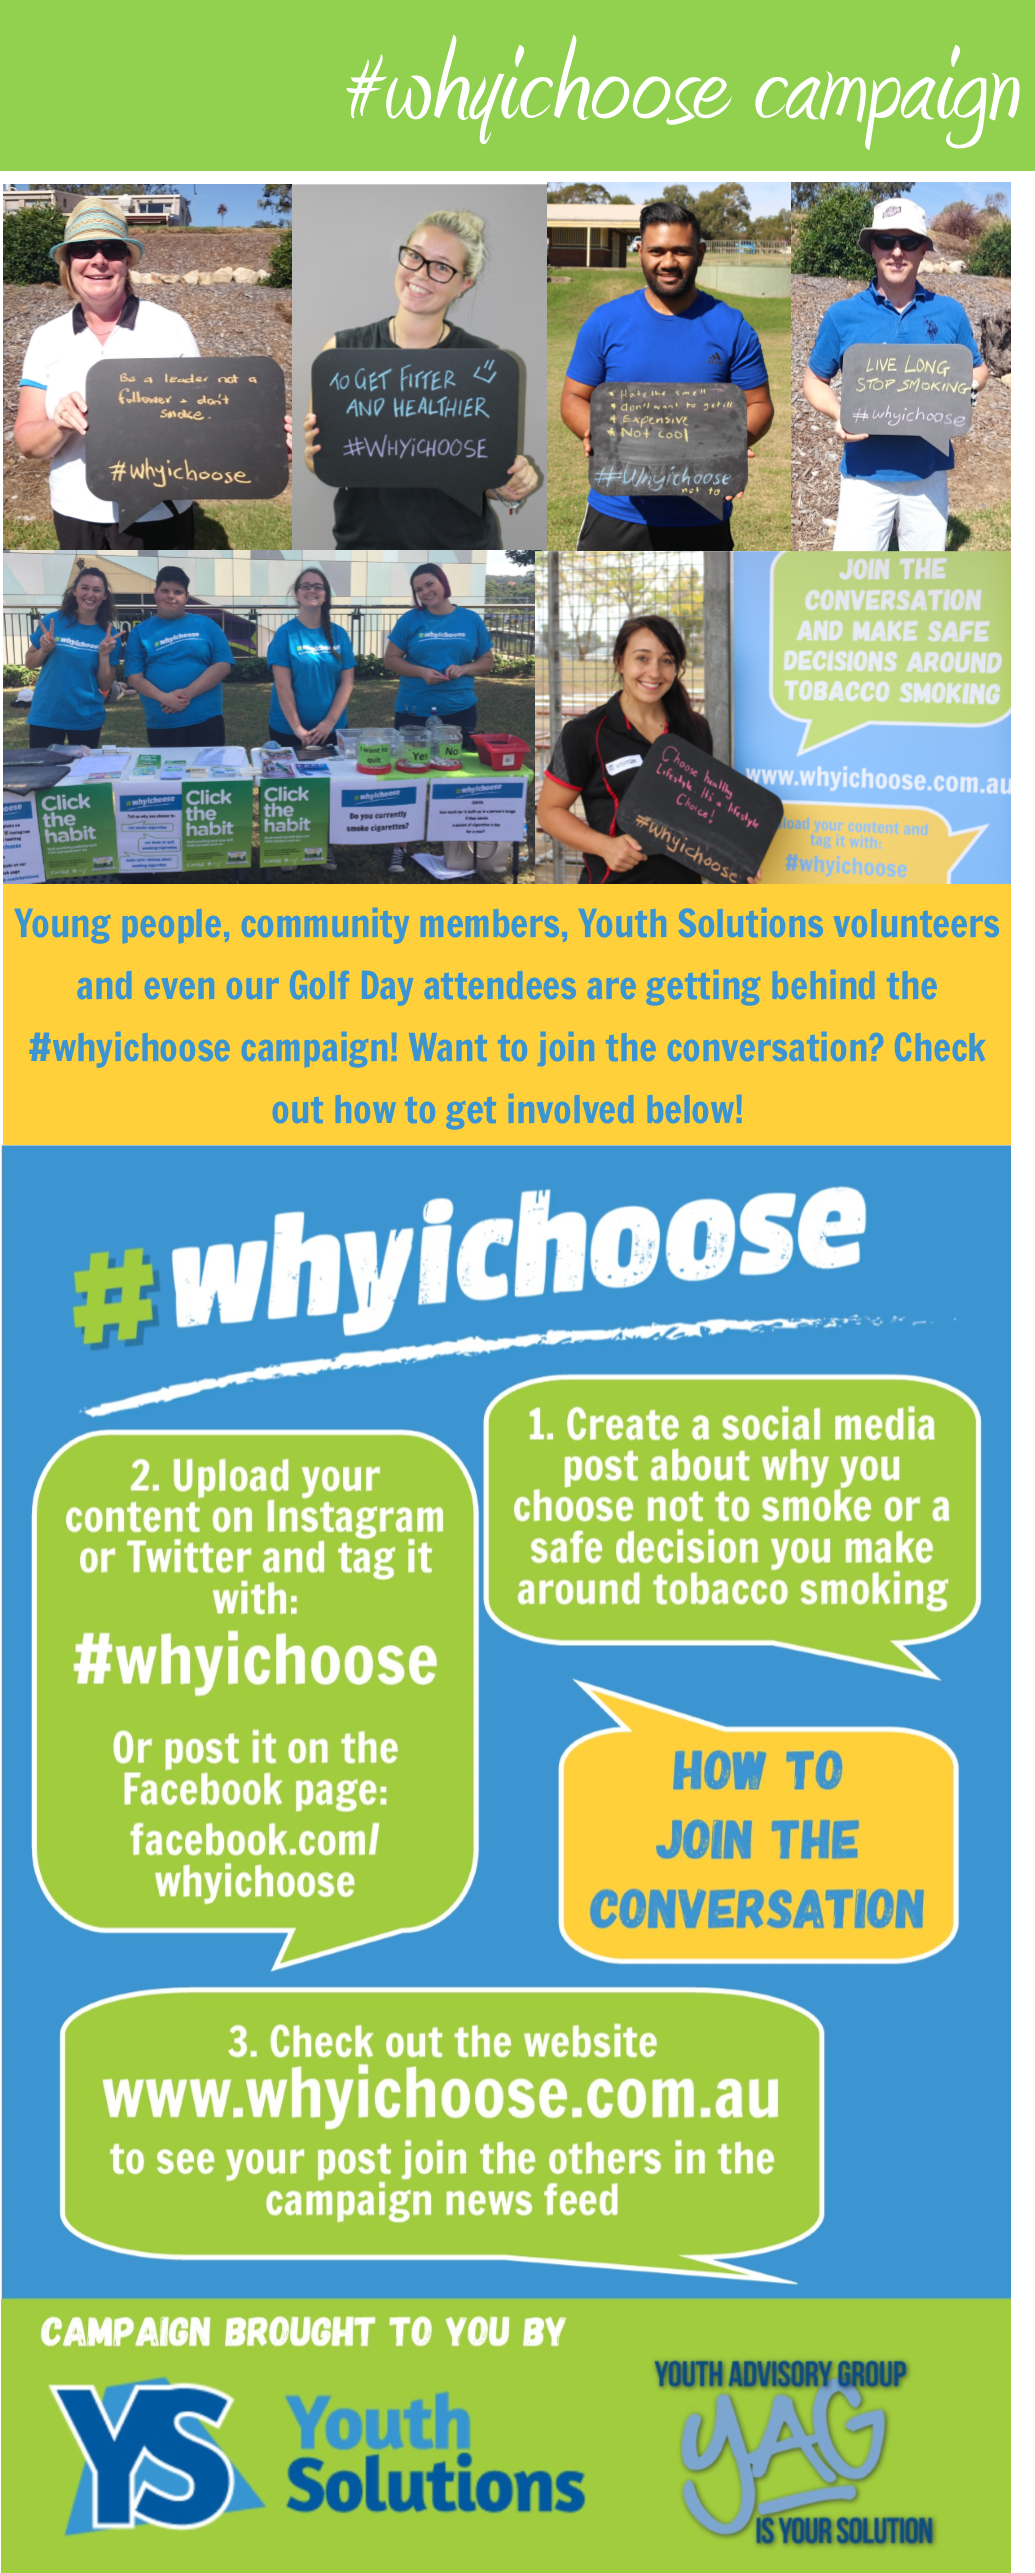 #whyichoose campaign - get involved now!